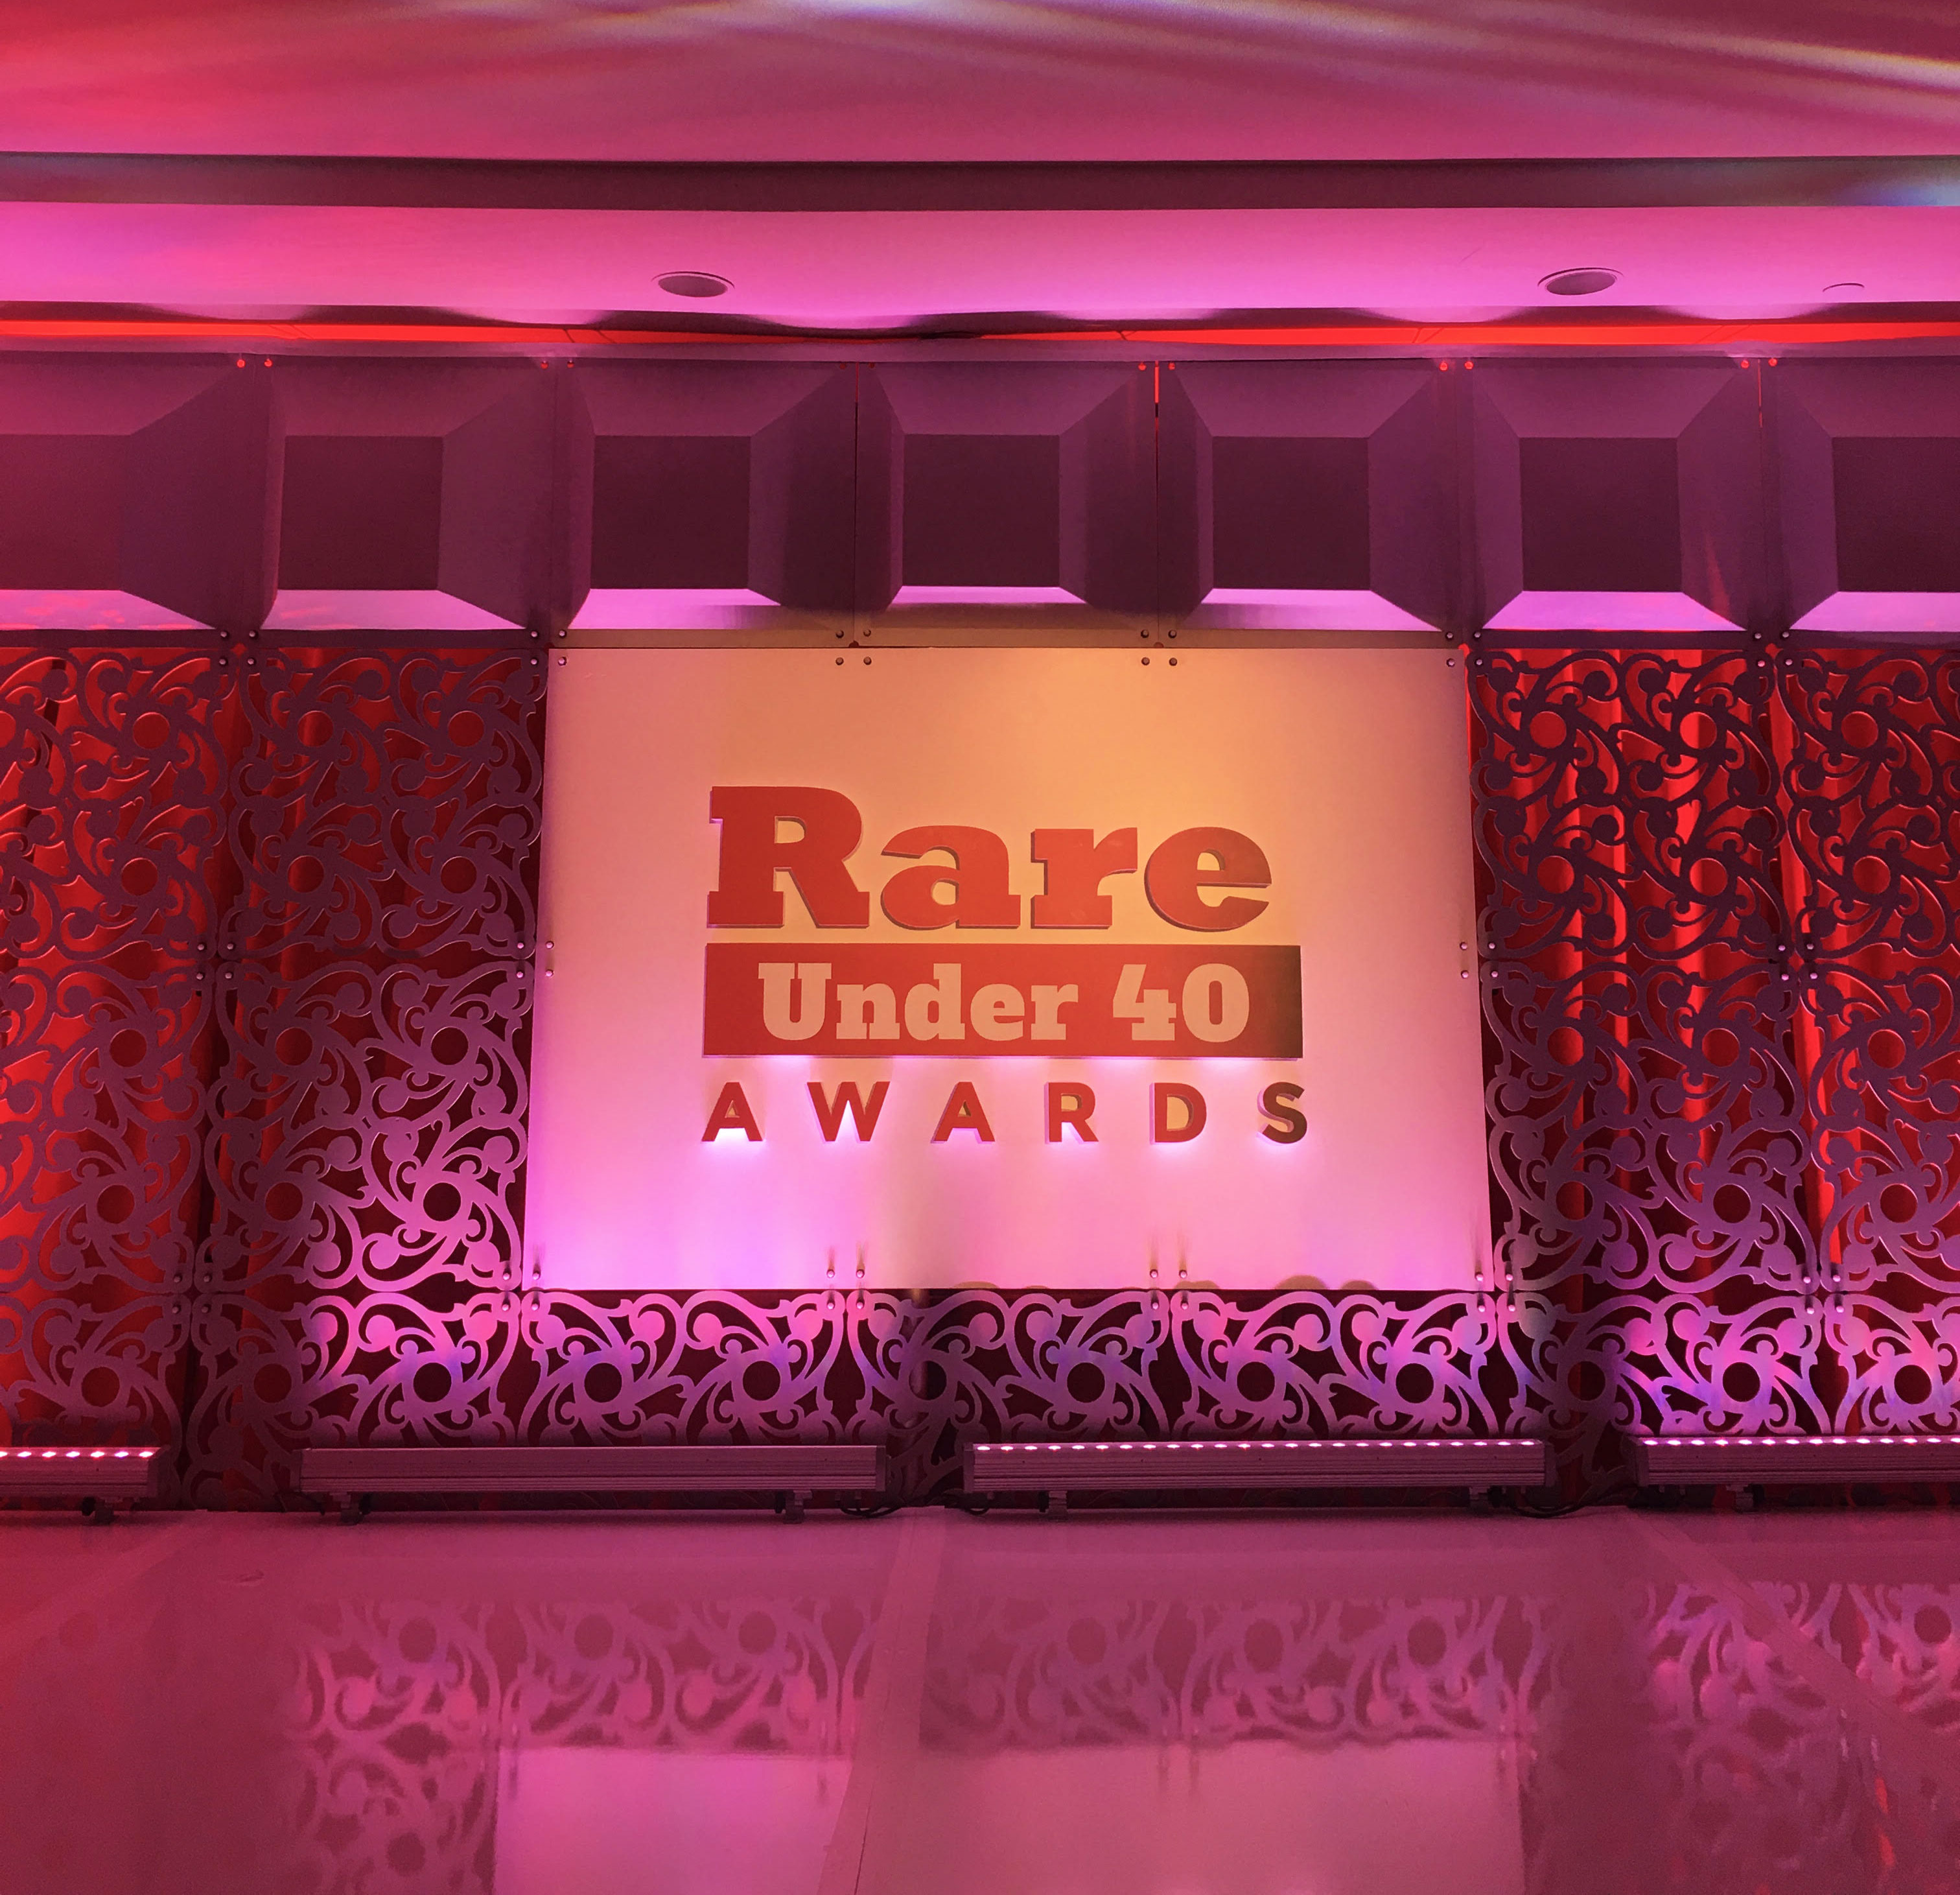 Recapping RARE's Under 40 Awards